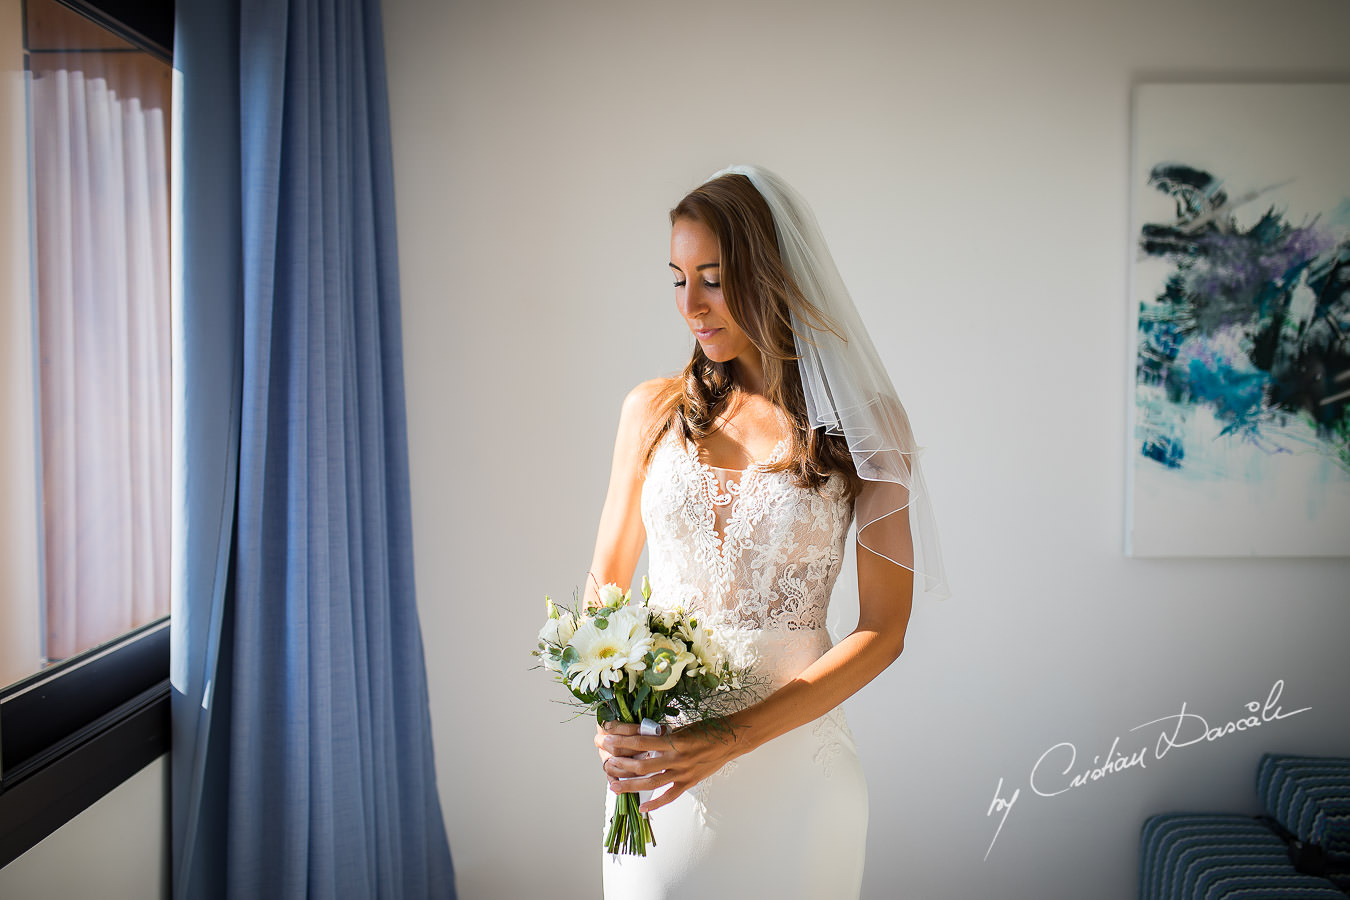 Moments with the beautiful bride Simone photographed by Cyprus Photographer Cristian Dascalu during a beautiful wedding at Cap St. George in Paphos.